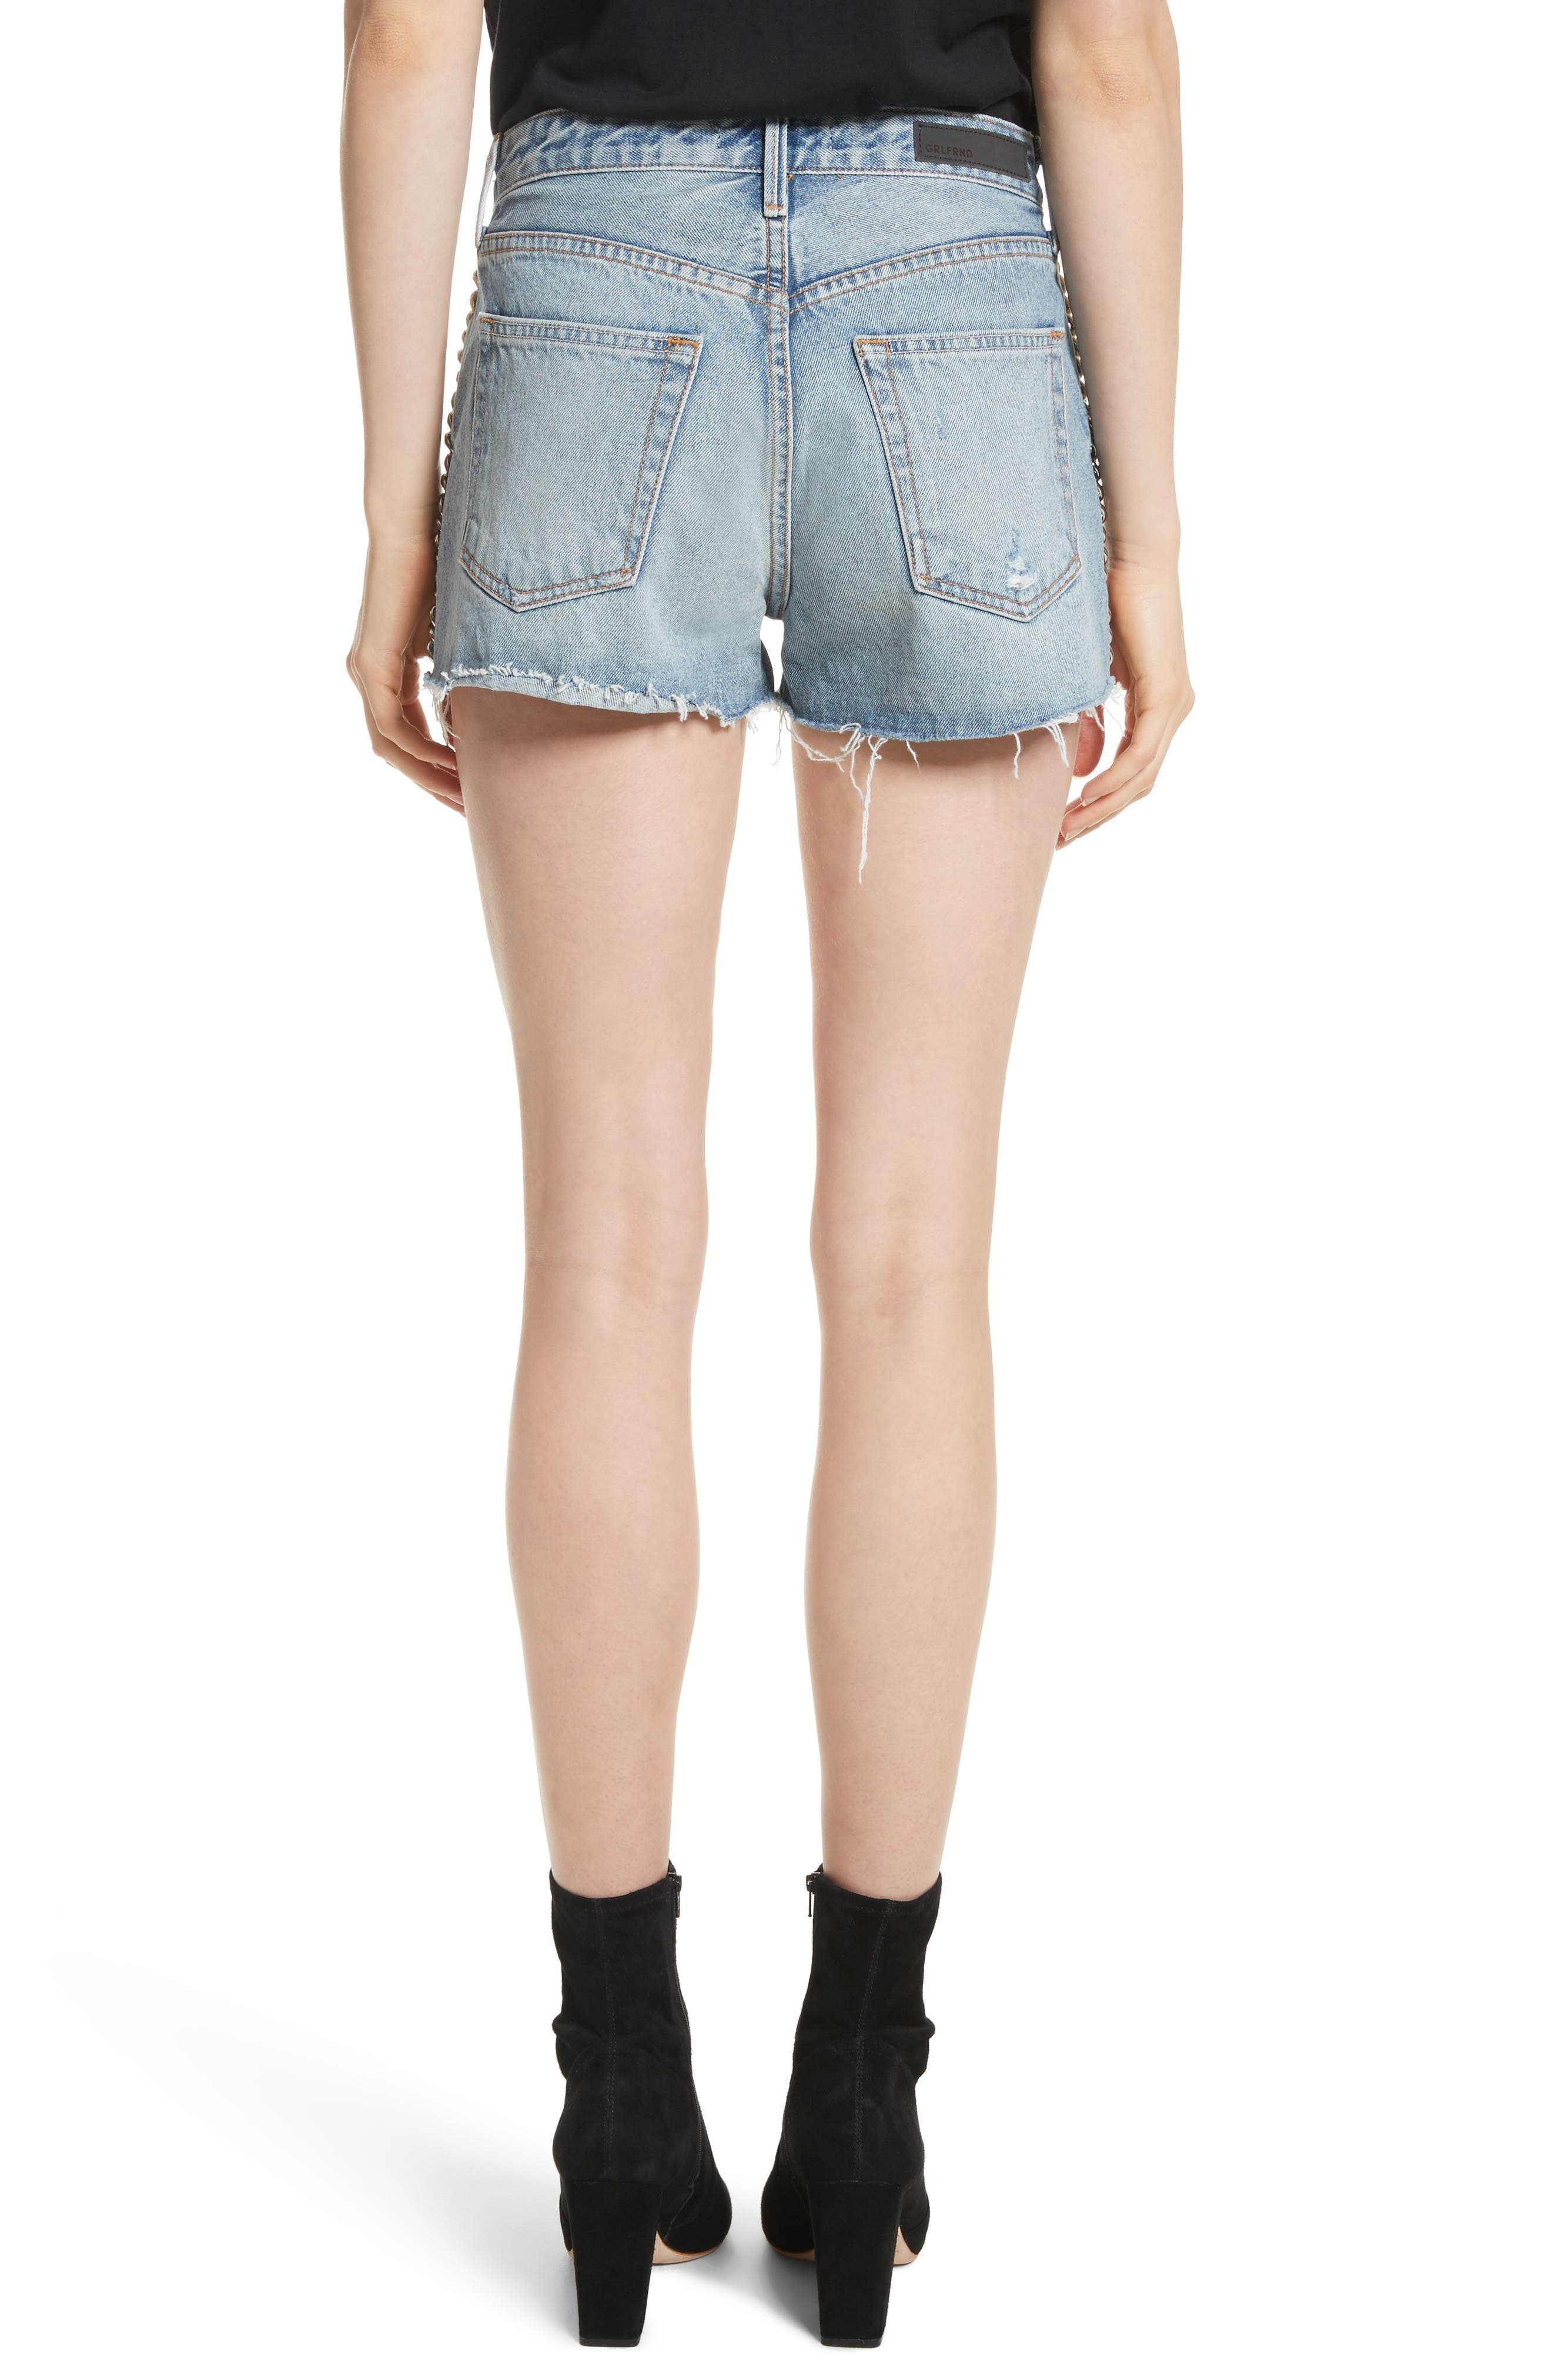 Cindy Rigid High Waist Denim Shorts,                             Alternate thumbnail 2, color,                             Cast Iron